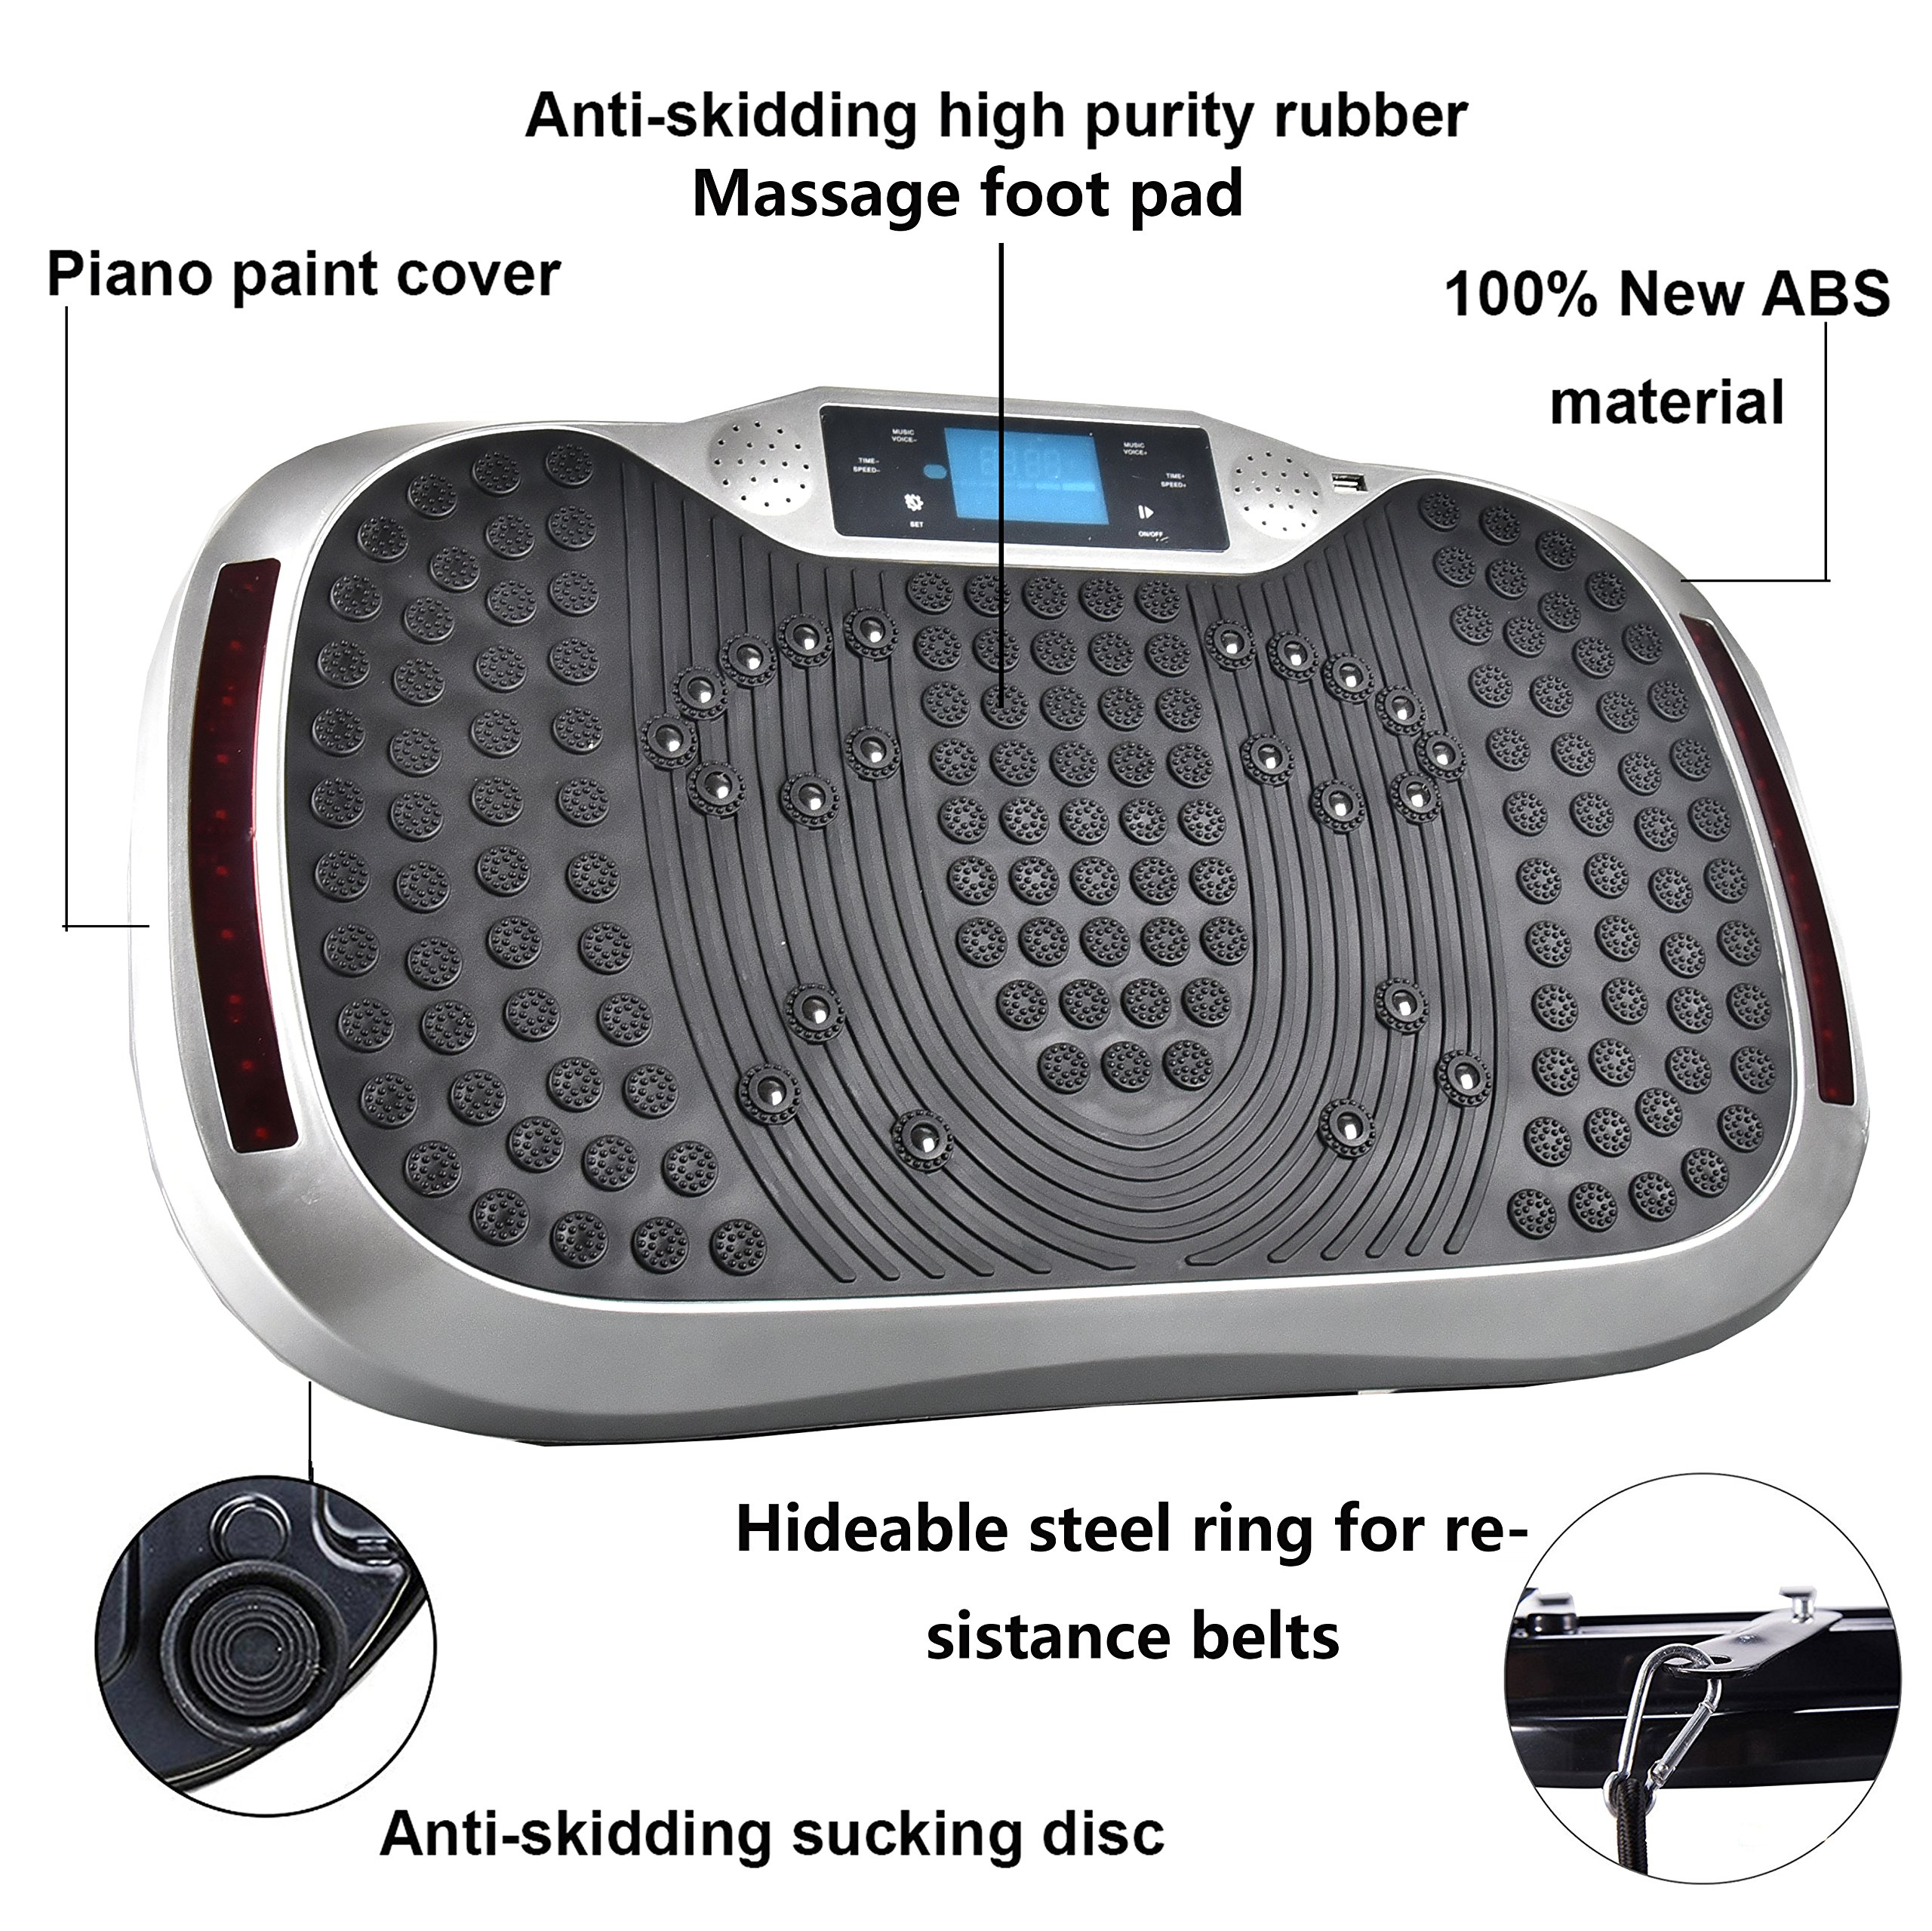 Reliancer Built-in Music Player Fitness Vibration Platform Whole Full Body Shaped Crazy Fit Plate Massage Workout Trainer Exercise Machine Plate w/Integrated USB Port&LED Light (W/Music-Silver) by Reliancer (Image #5)